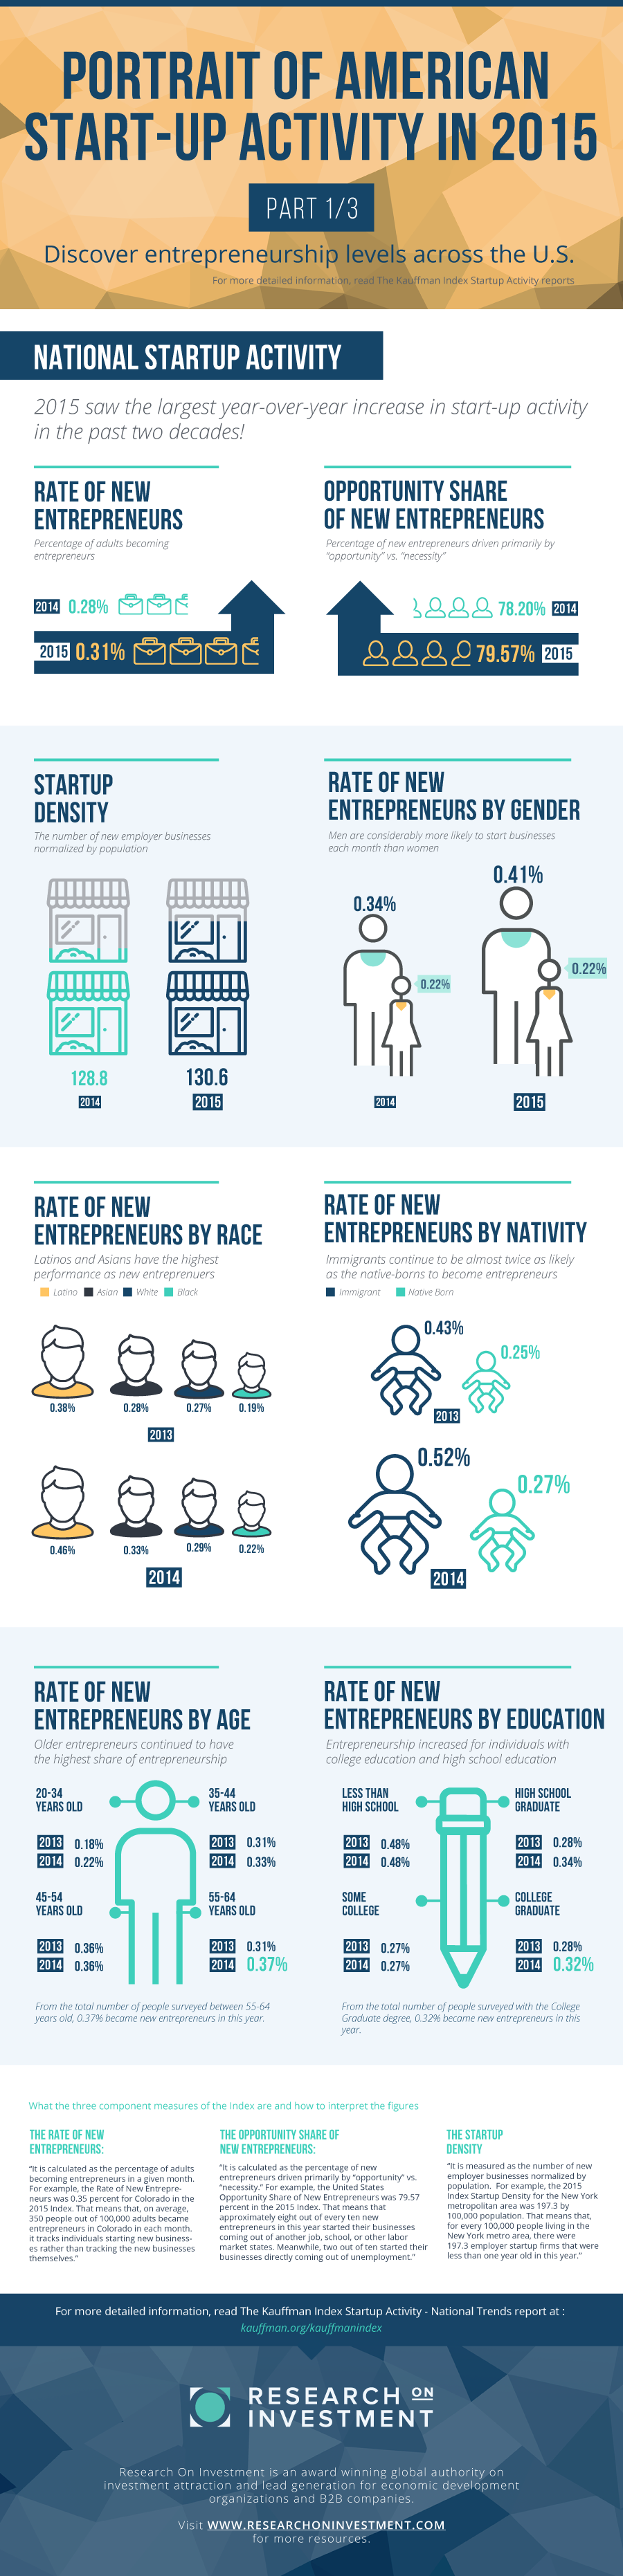 PORTRAIT OF AMERICAN STARTUP ACTIVITY IN 2015: NATIONAL TRENDS Infographic